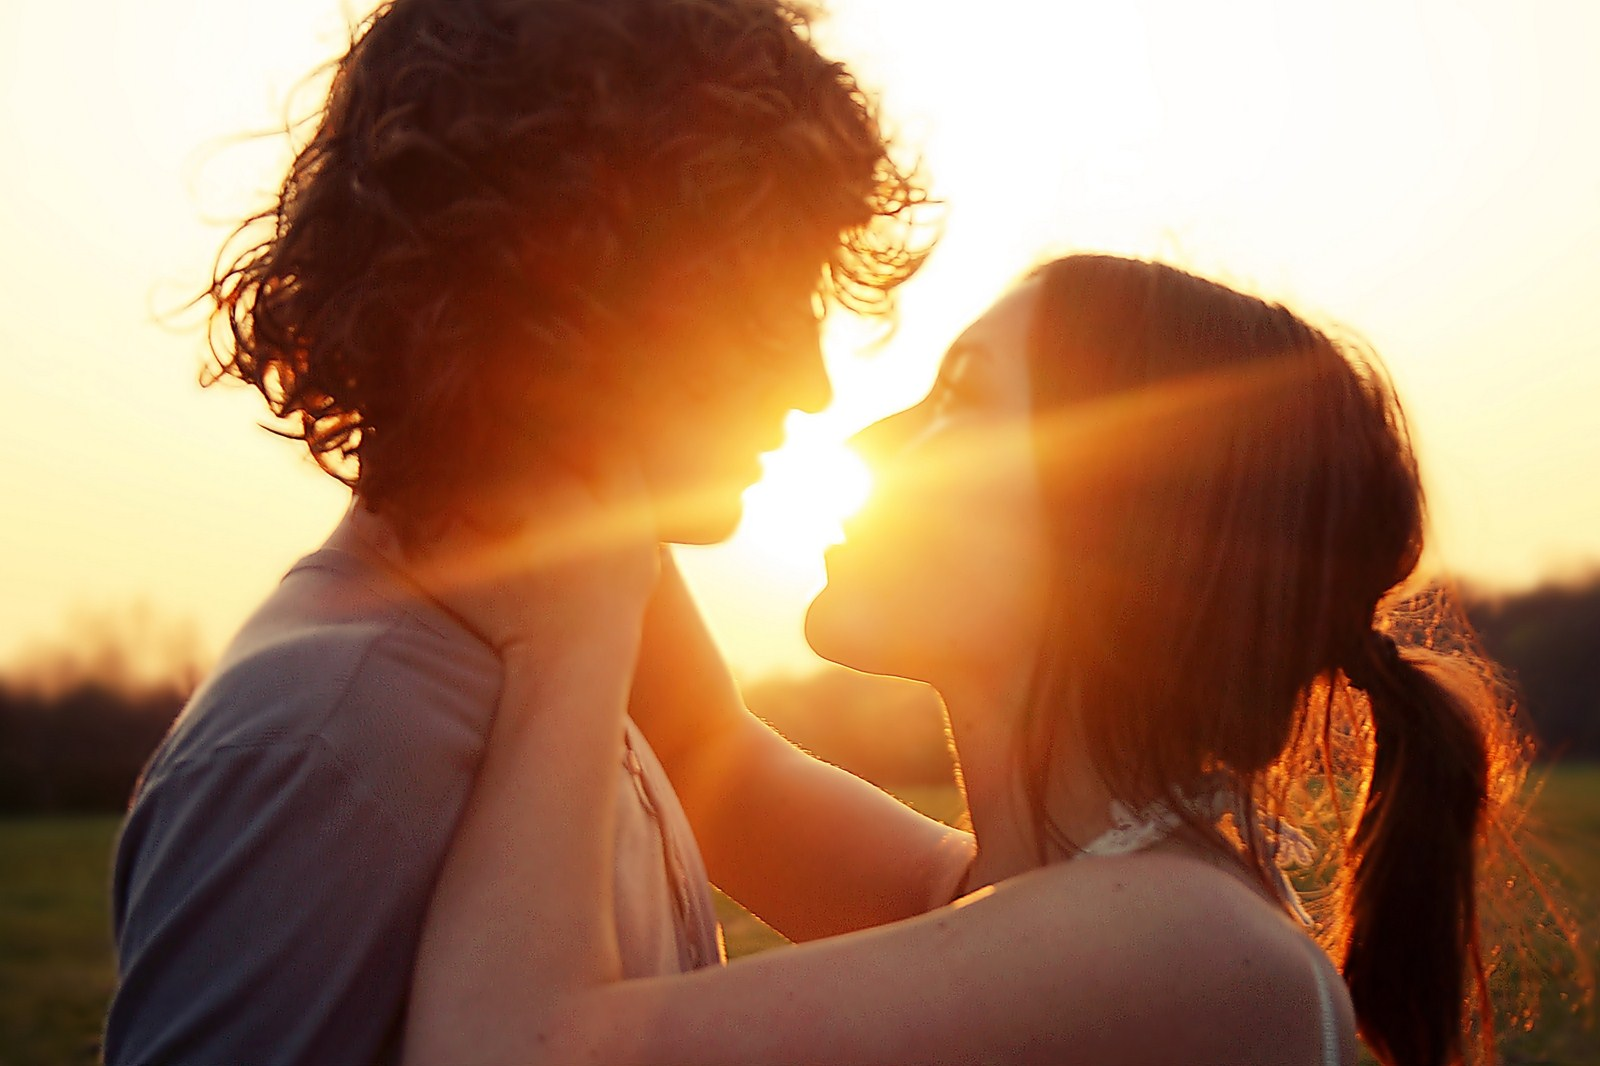 Love couple Hd Wallpaper Latest : Sun Summer Love couple Magic Moment Mood Romance Photo HD Wallpaper Love Wallpapers Romantic ...